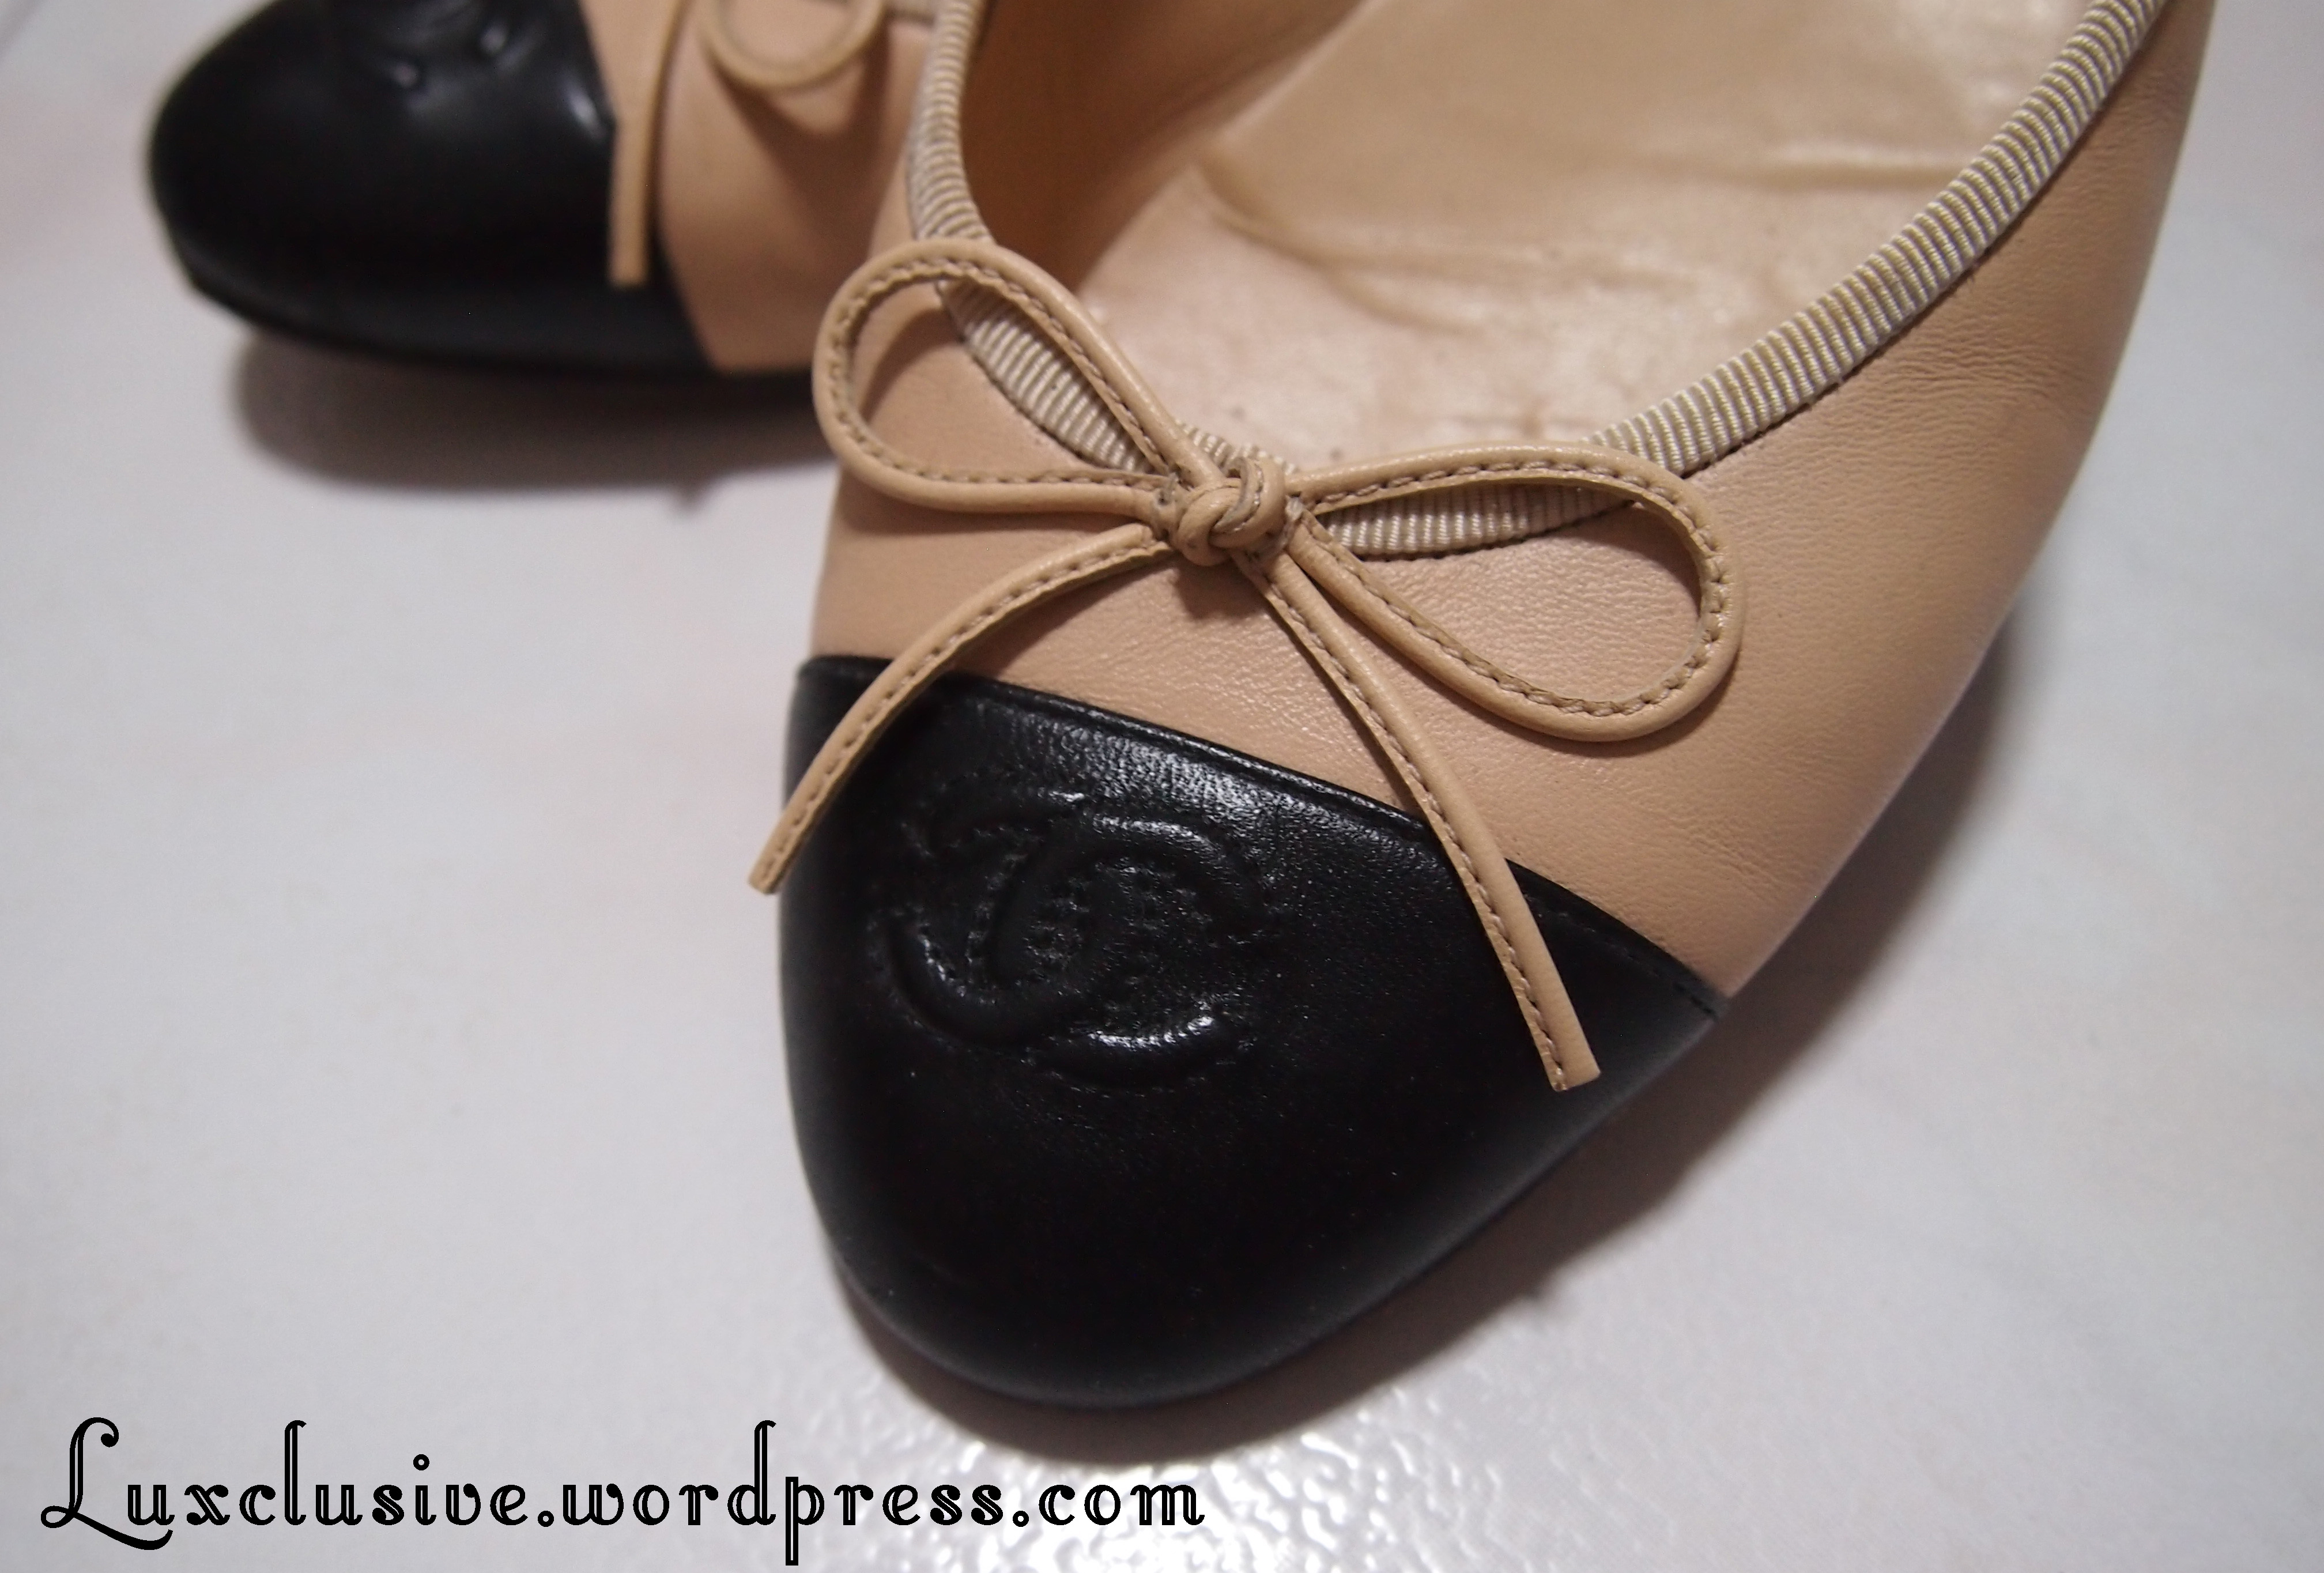 Chanel ballerinas shop online